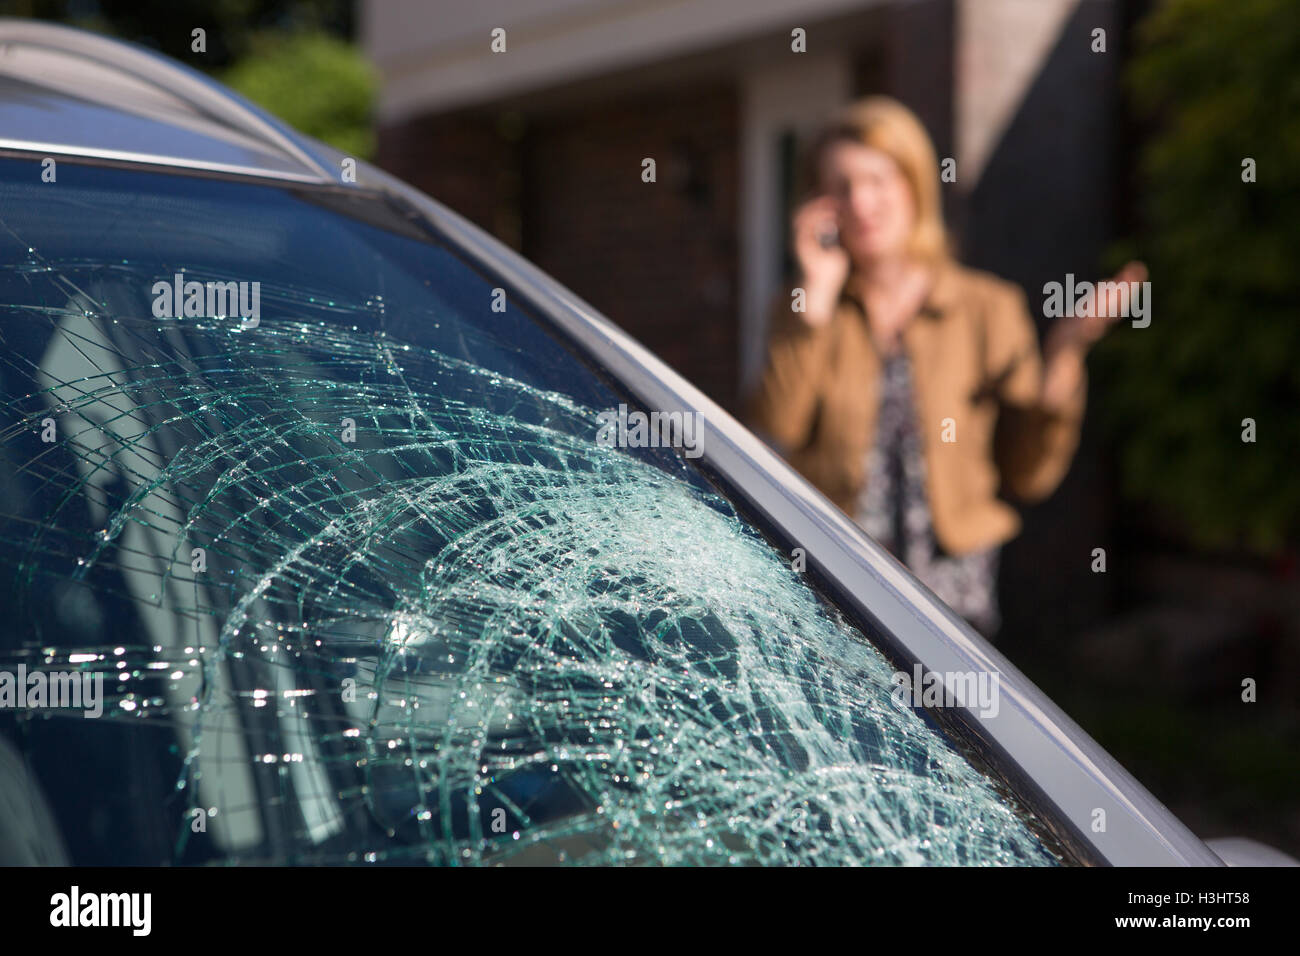 Woman Phoning For Help After Car Windshield Has Broken - Stock Image